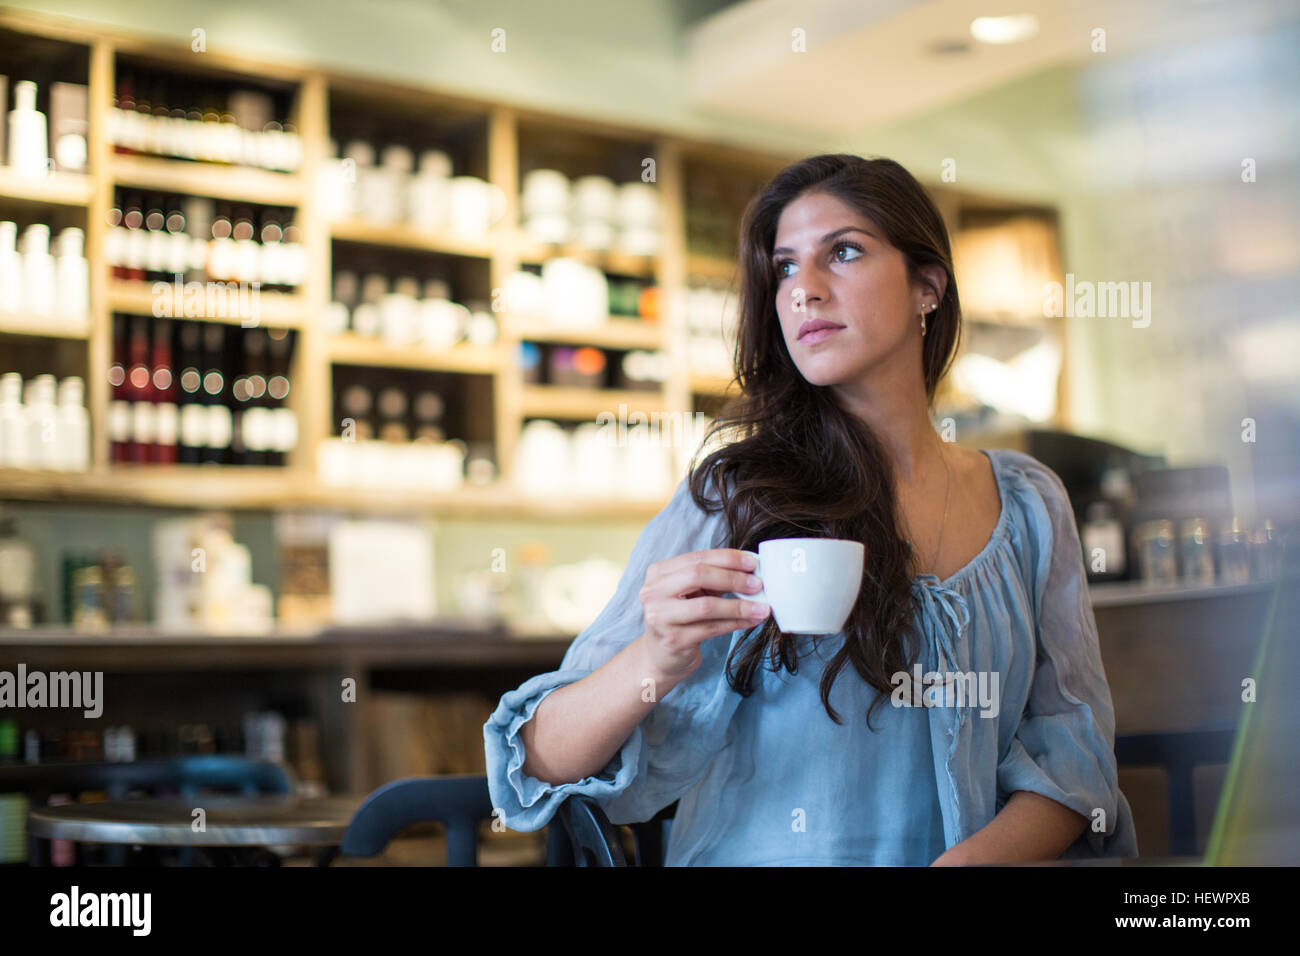 Young woman sitting in cafe looking sideways Photo Stock